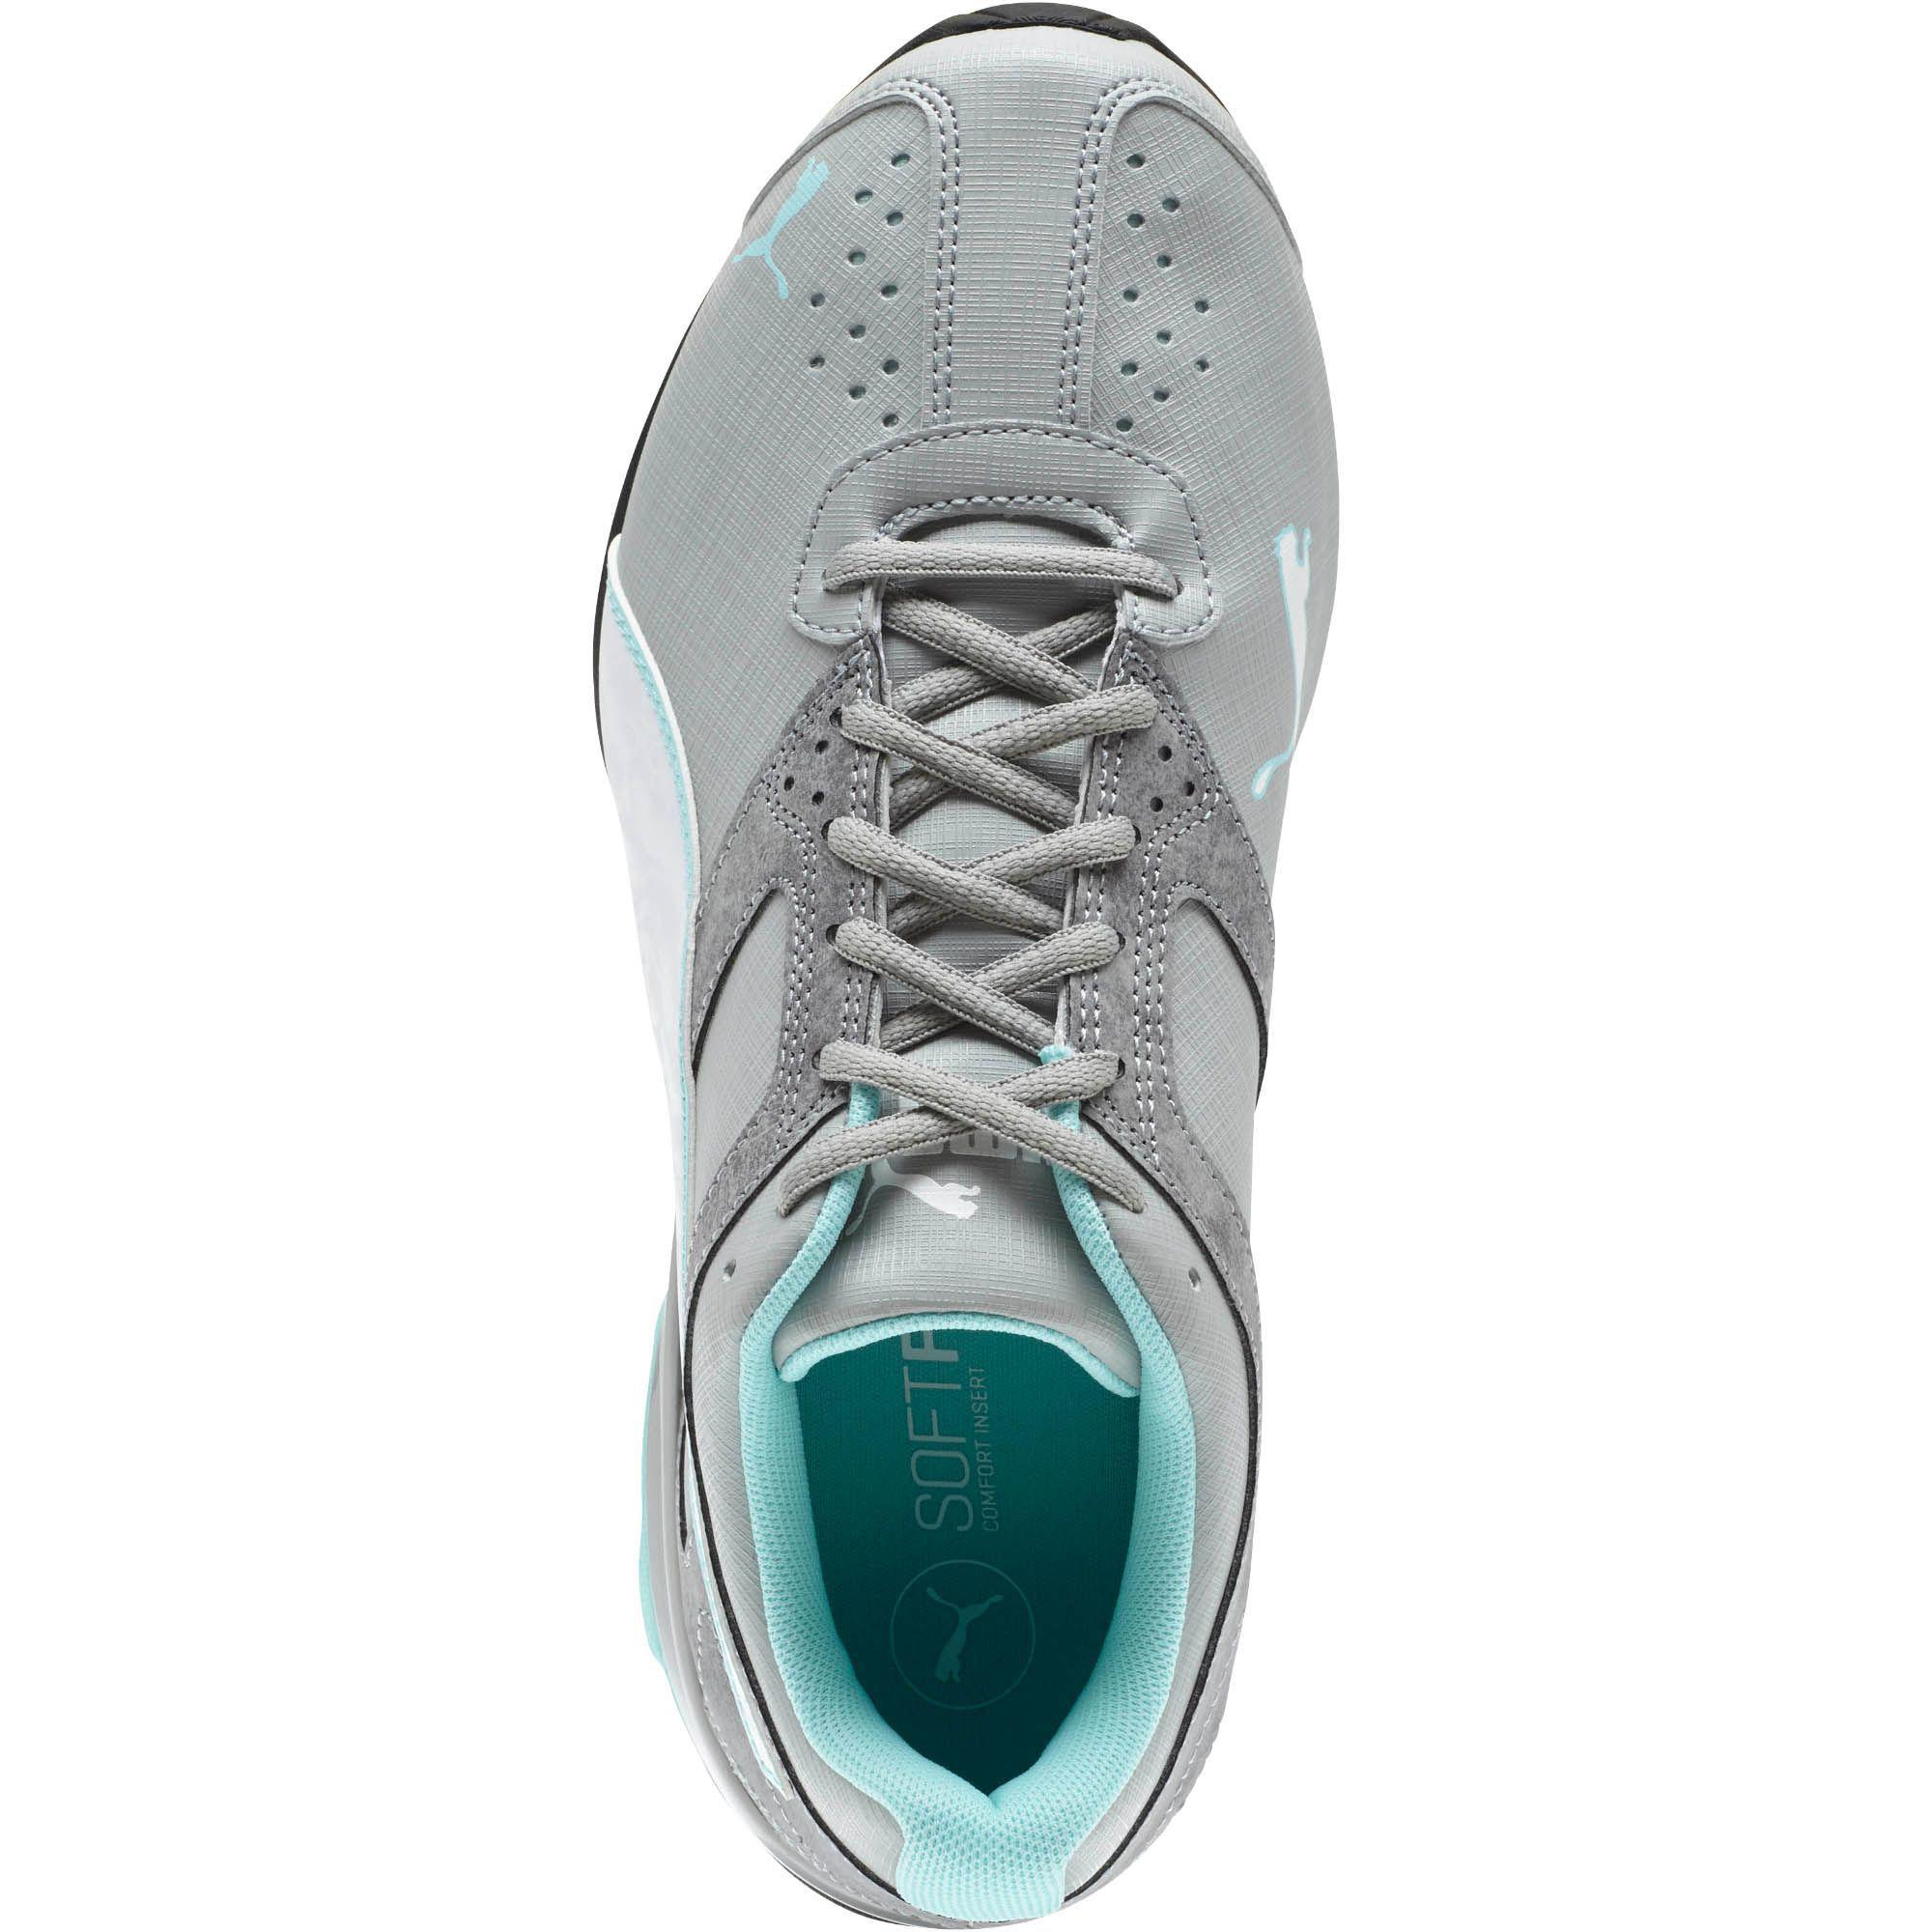 Lyst - PUMA Tazon 6 Accent Women s Running Shoes in Blue 1b3ad95a3cd